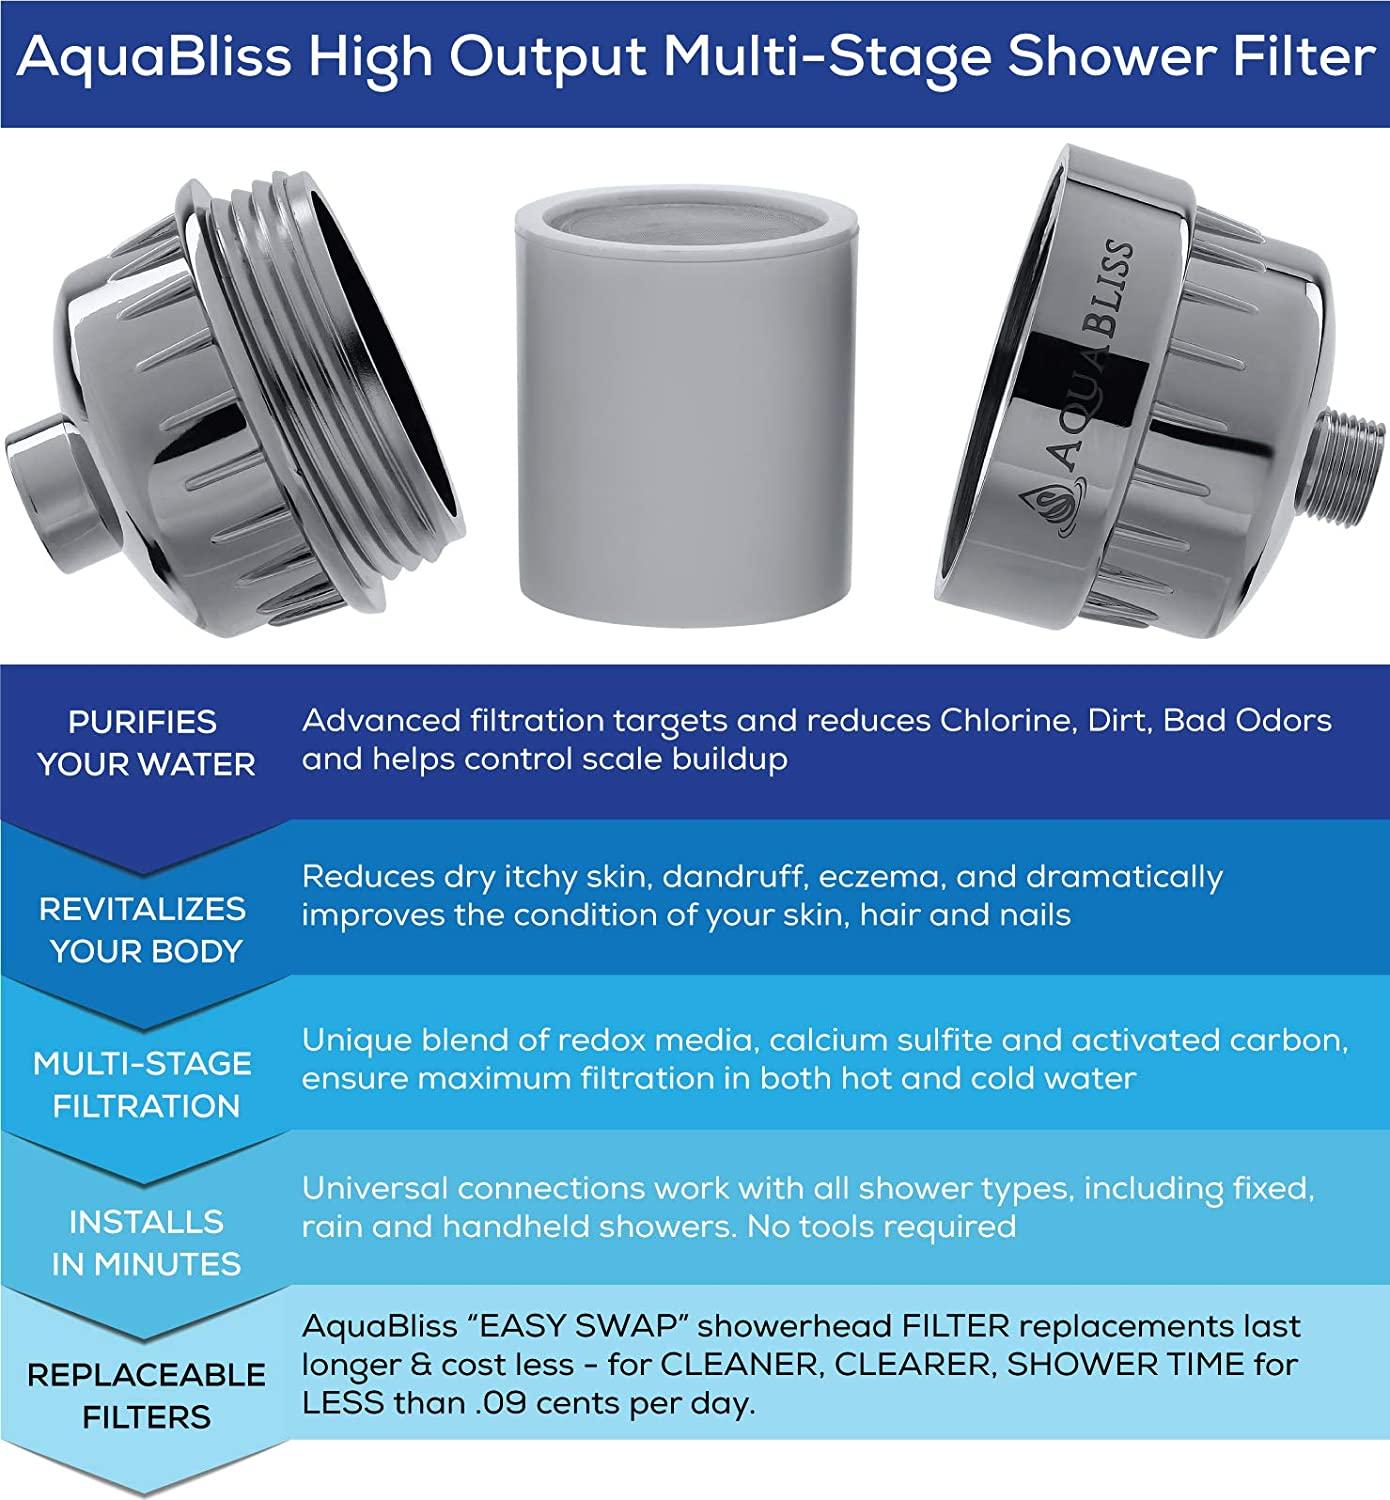 No Housing AquaHomeGroup Multi-Stage Replacement Premium Filter Cartridge Compatible with Any Shower Filter of Similar Design Universal High Output AquaBliss CaptainEco Homspal